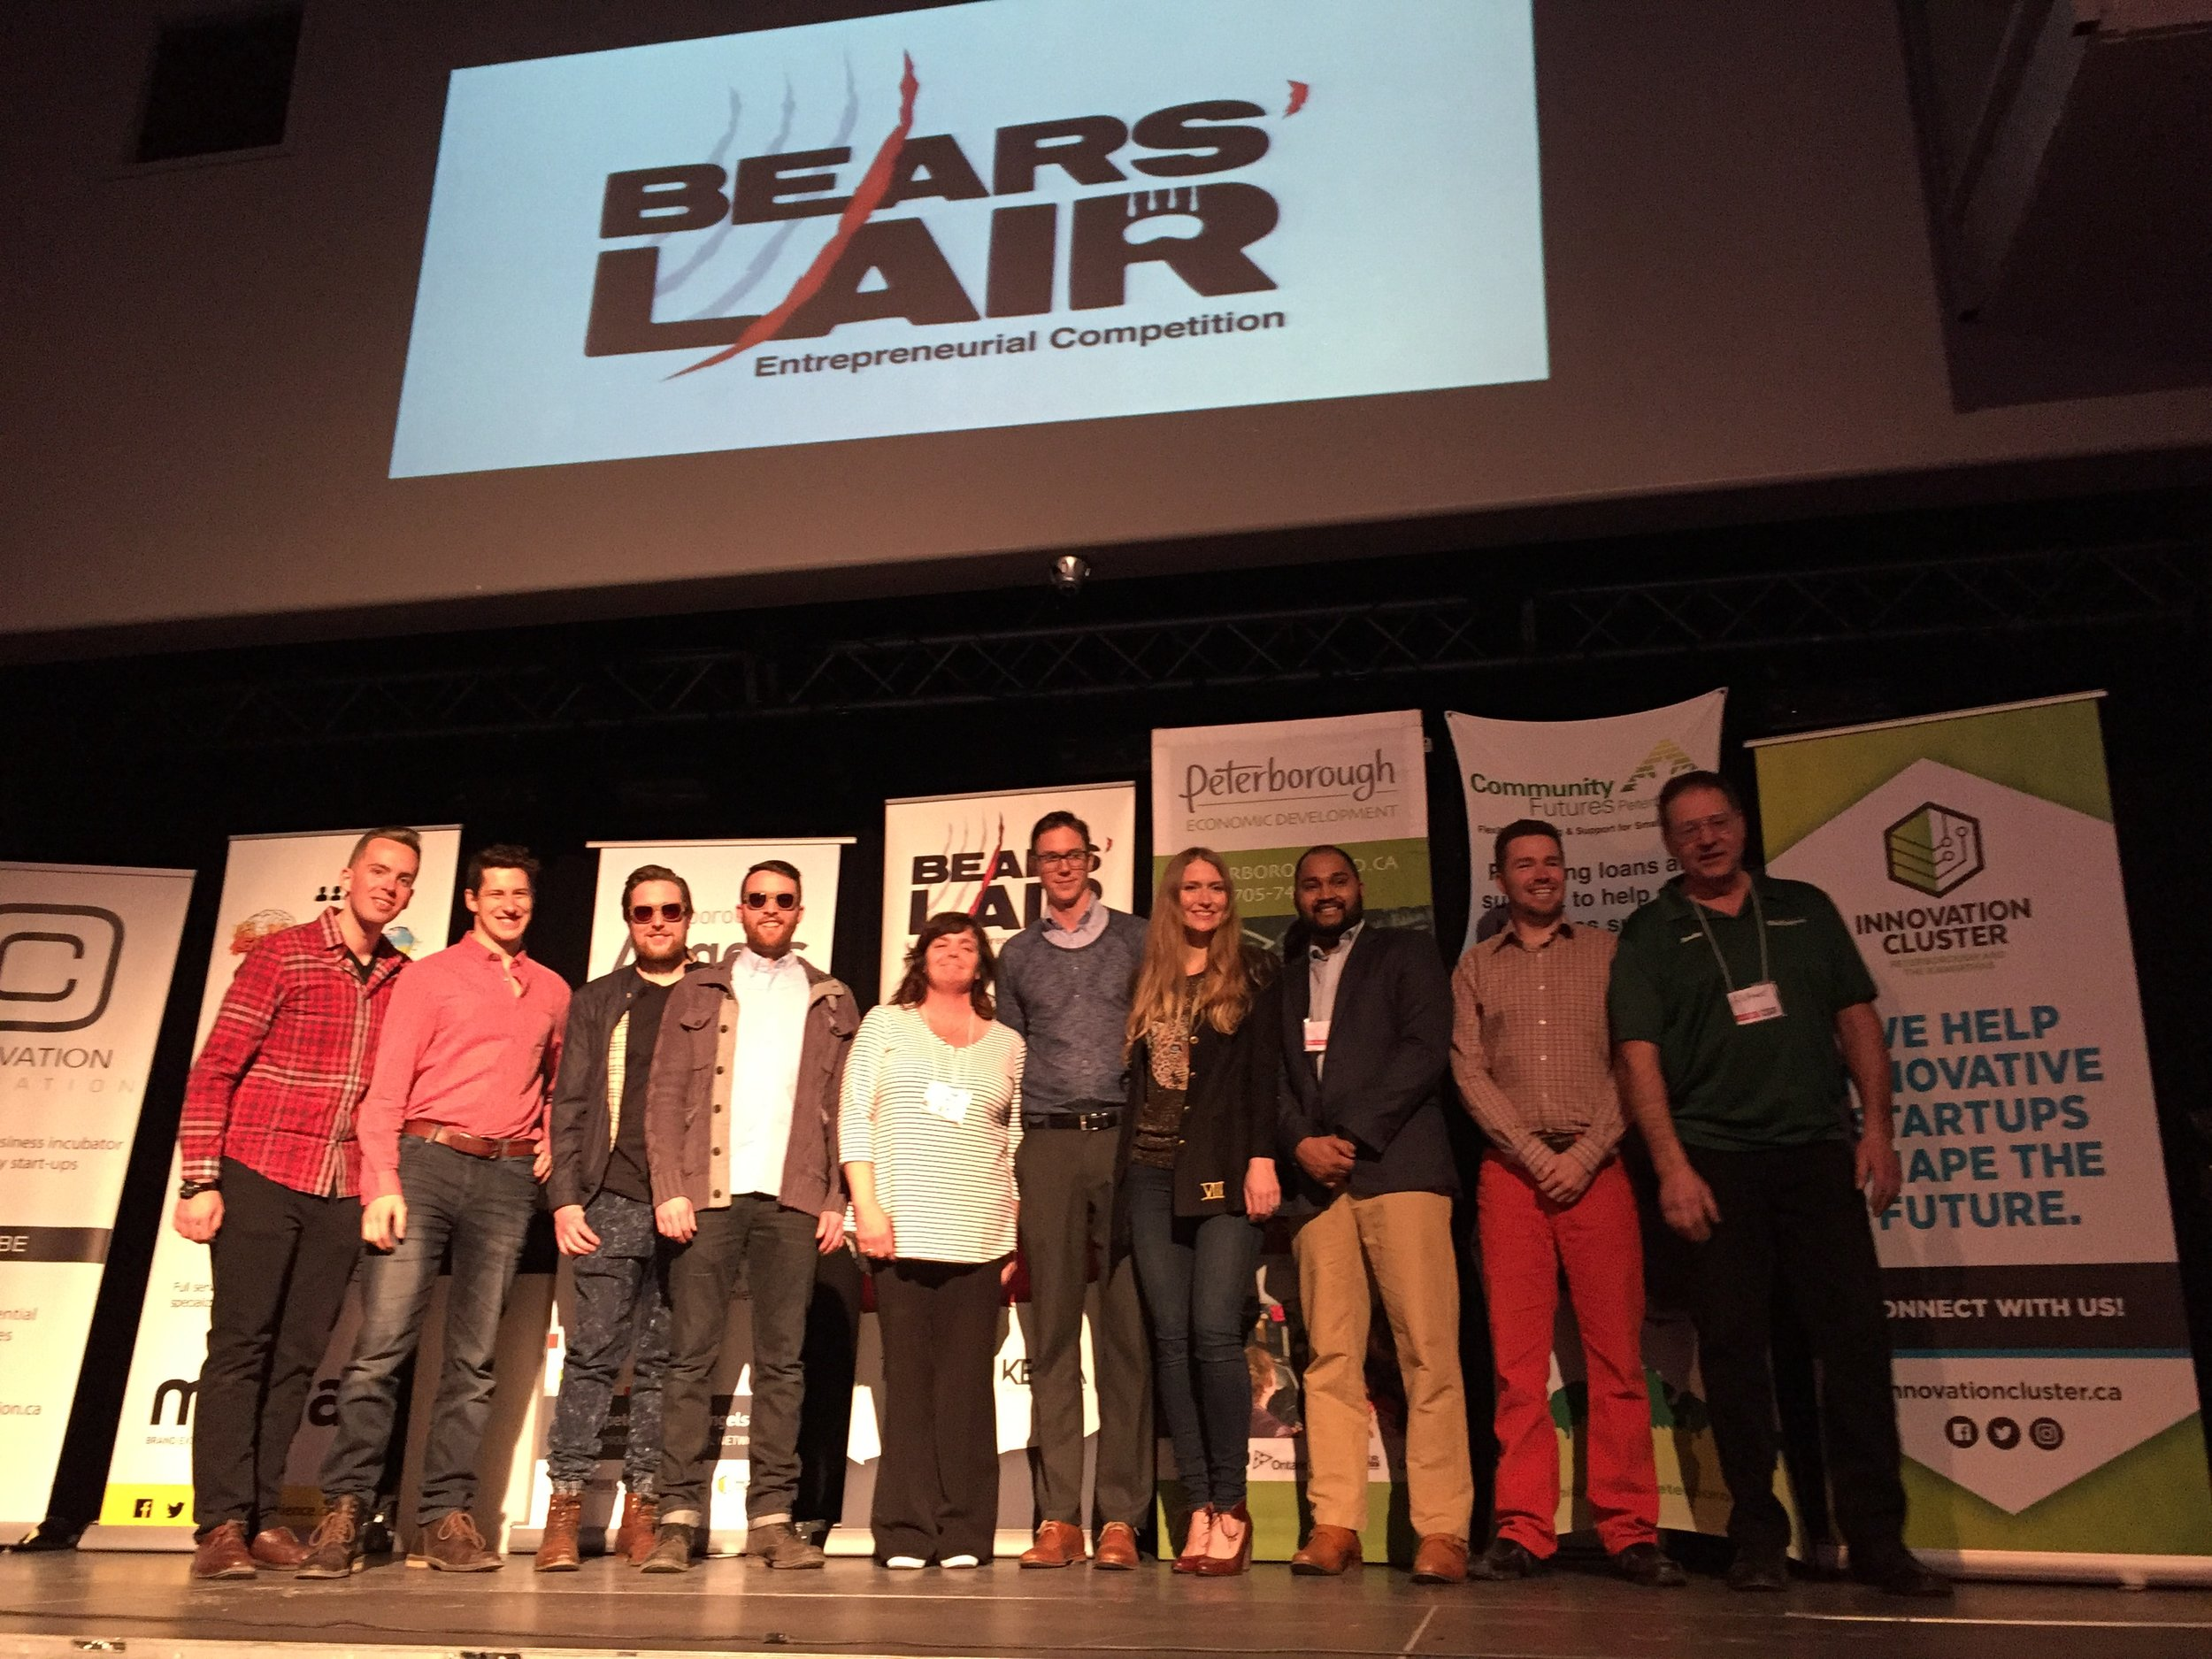 2017 Bears Lair Finalists on stage at the Bear' Lair Semi-Finalist Showcase at The Venue on March 21st, 2017. From left to right: That Dam Tea (TreeWell Limited), Loch, Ship Shape Service, Mont Pellier, Lab Improvements and Dock HitchHinge.